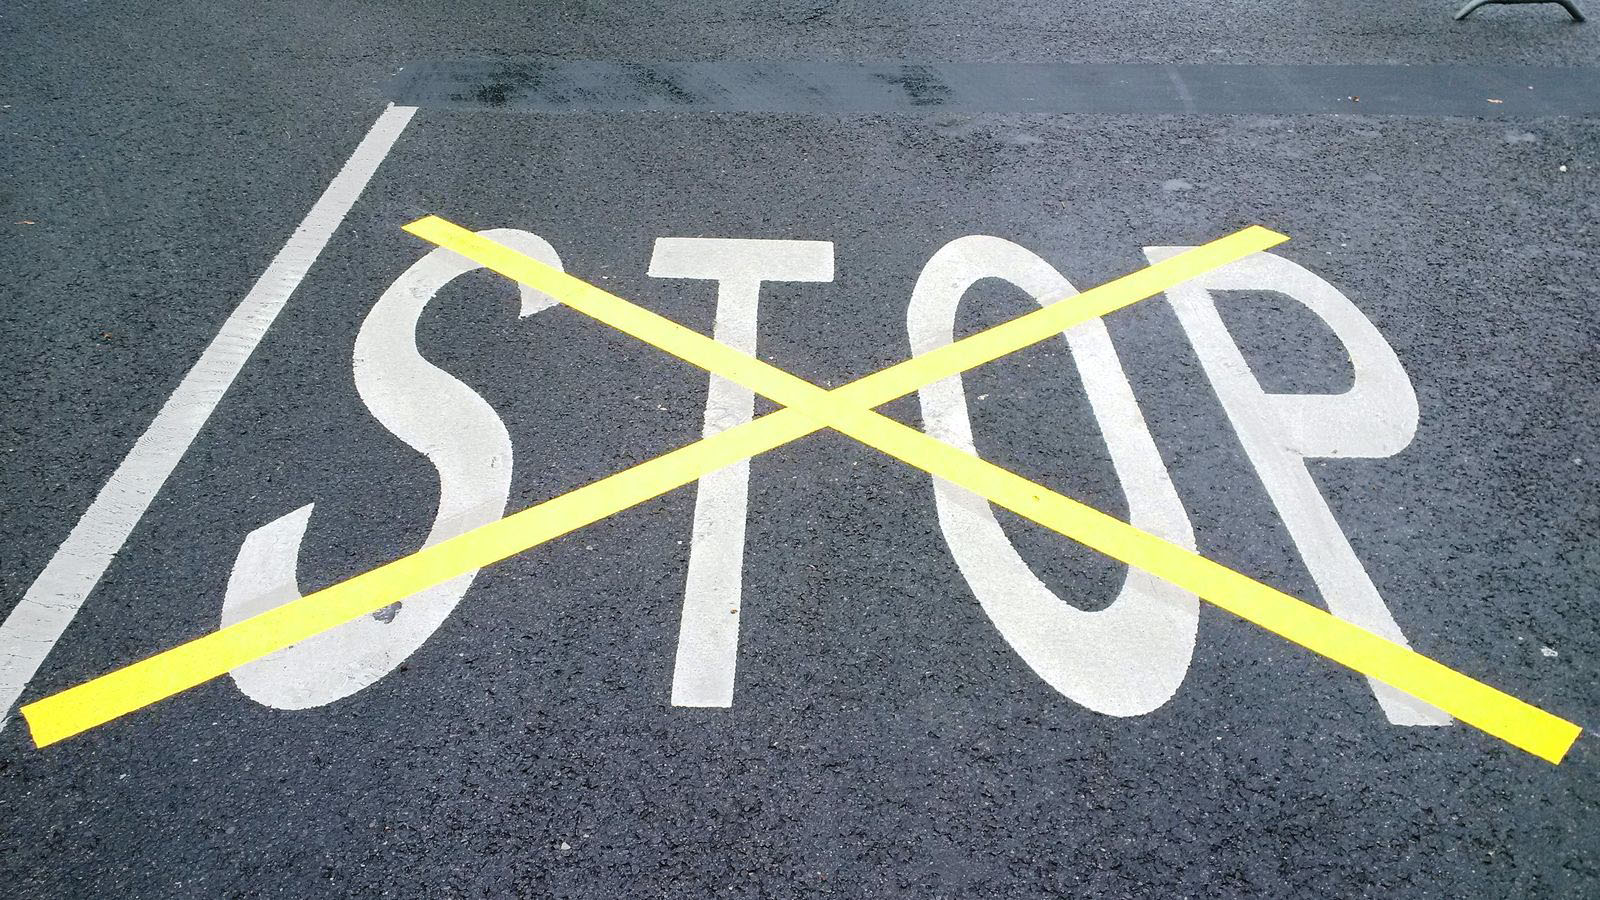 STOP painted on tarmac in white paint which has then been overpainted and crossed out with a large yellow 'X'.